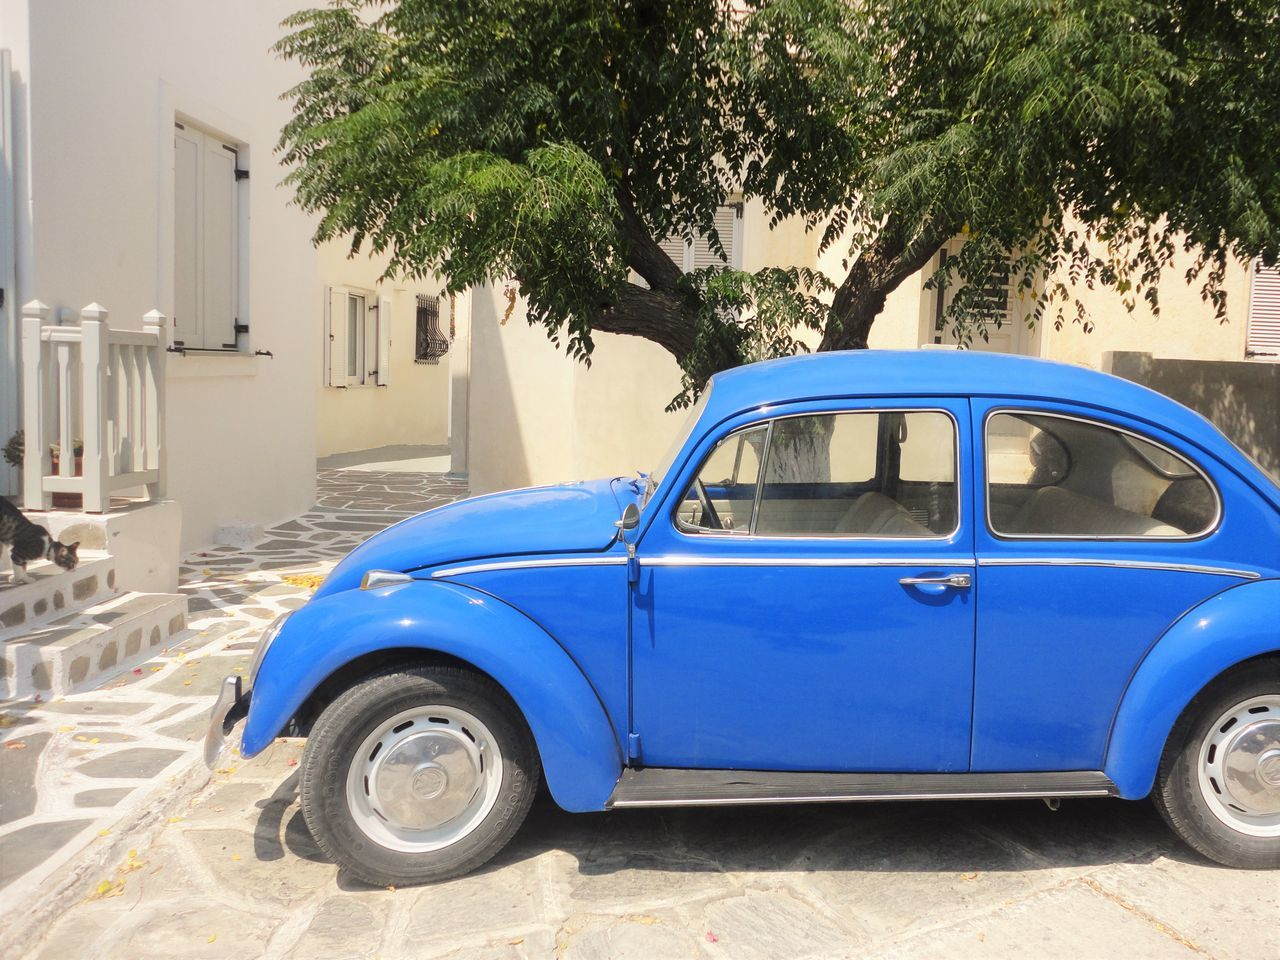 Architecture Beetle Blue Blue Beetle Blue Car Car Greek Greek Islands Mein Automoment Outdoors Parked Parking Stationary Tree